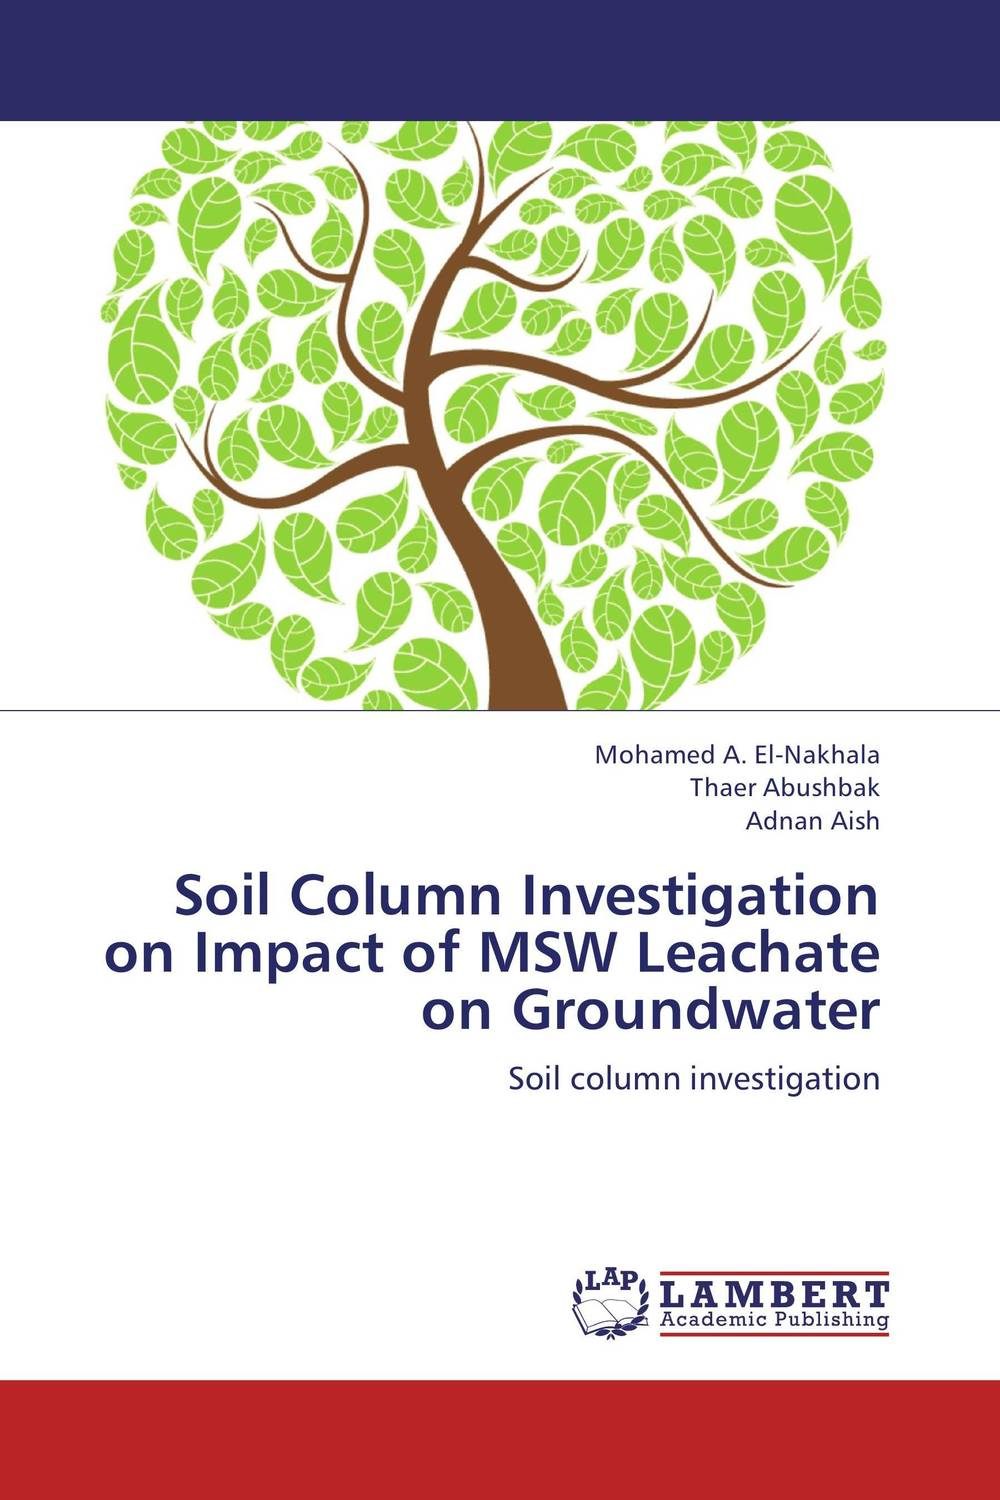 Soil Column Investigation on Impact of MSW Leachate on Groundwater